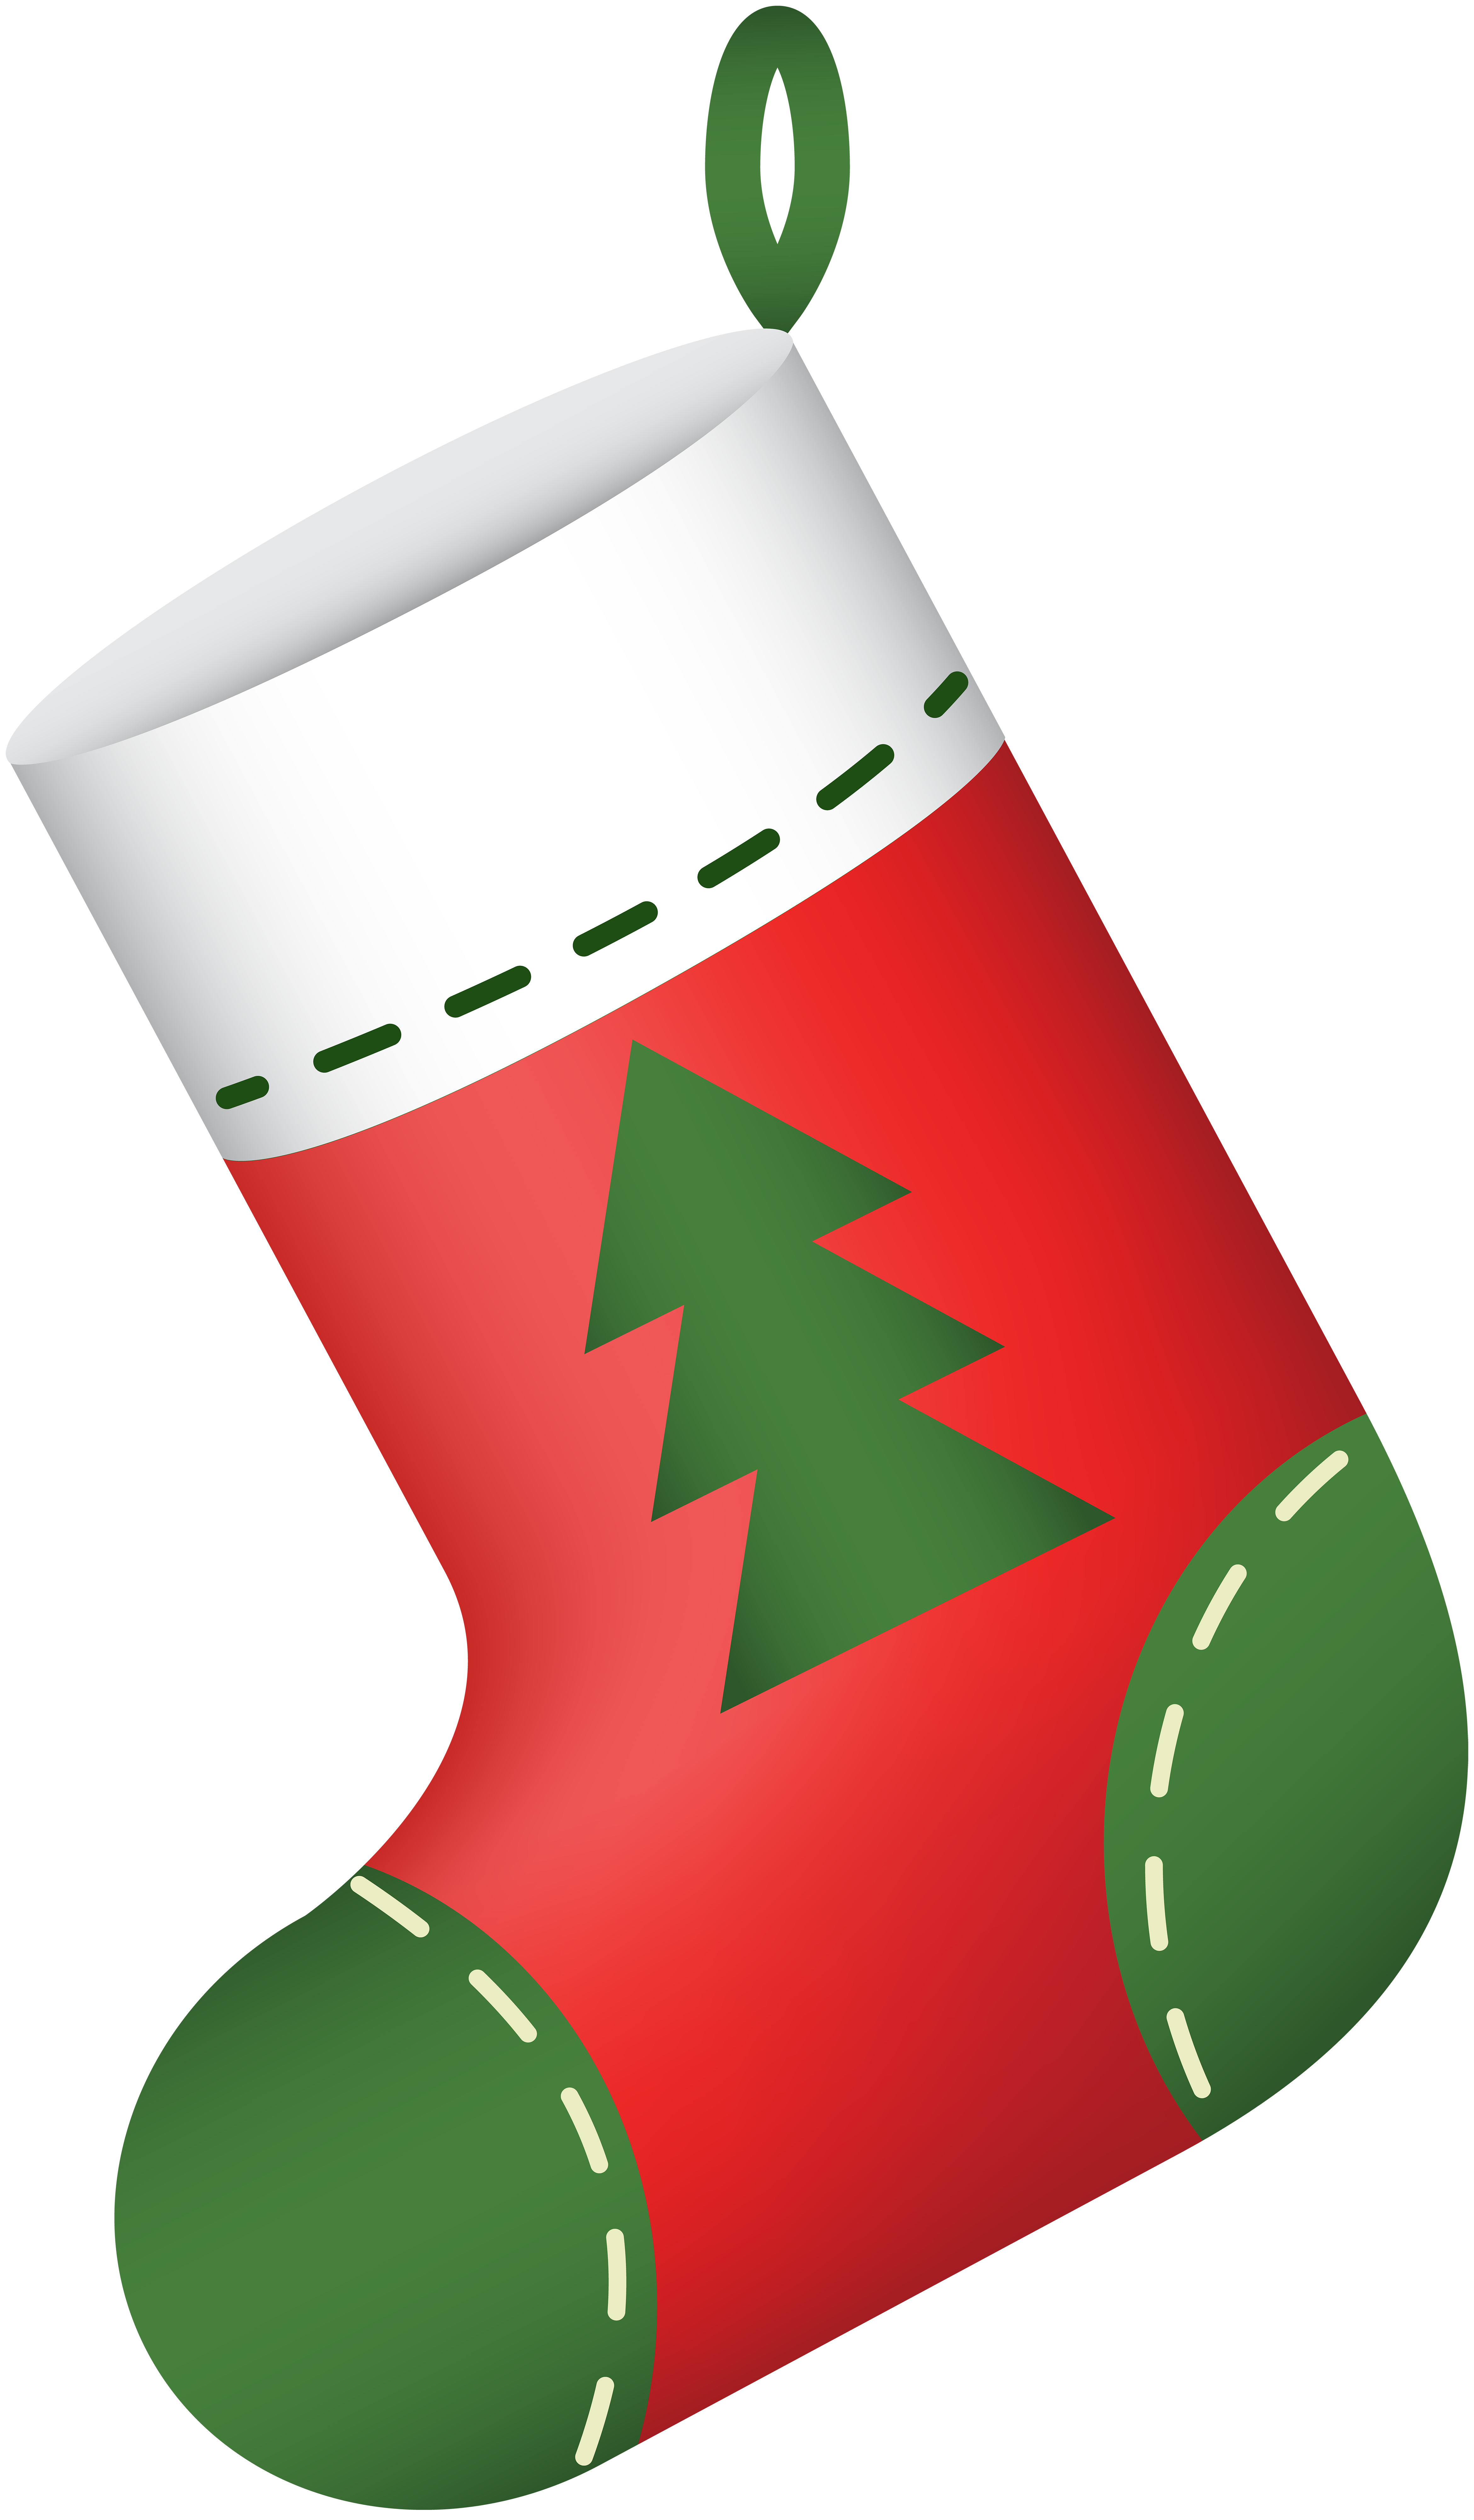 Free stocking at getdrawings. Waffle clipart christmas